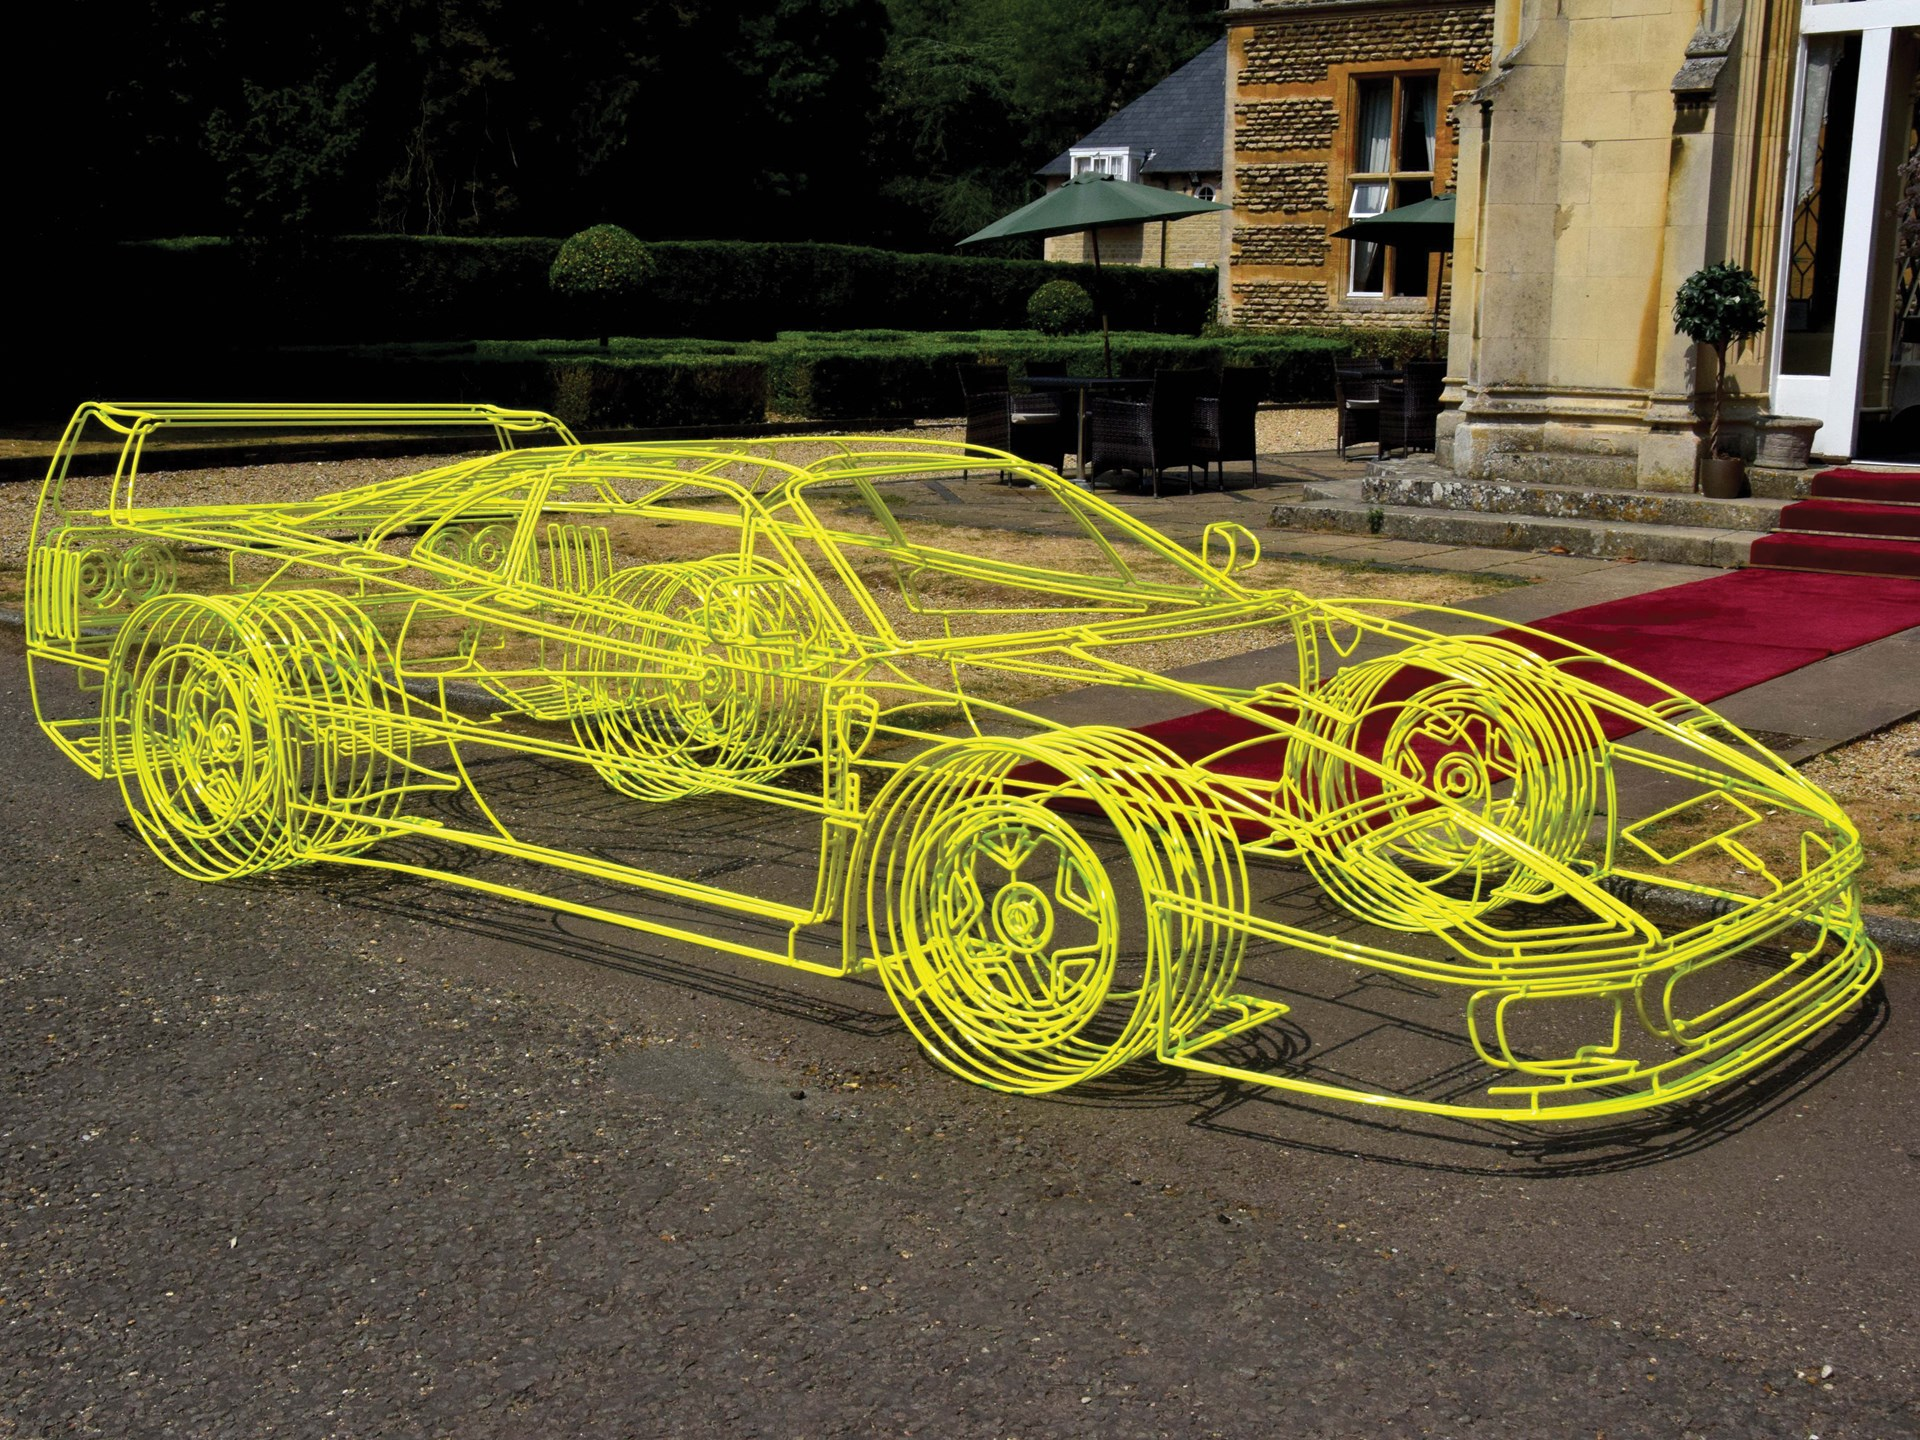 Ferrari F40 Wireframe Sculpture by Benedict Radcliffe, 2018